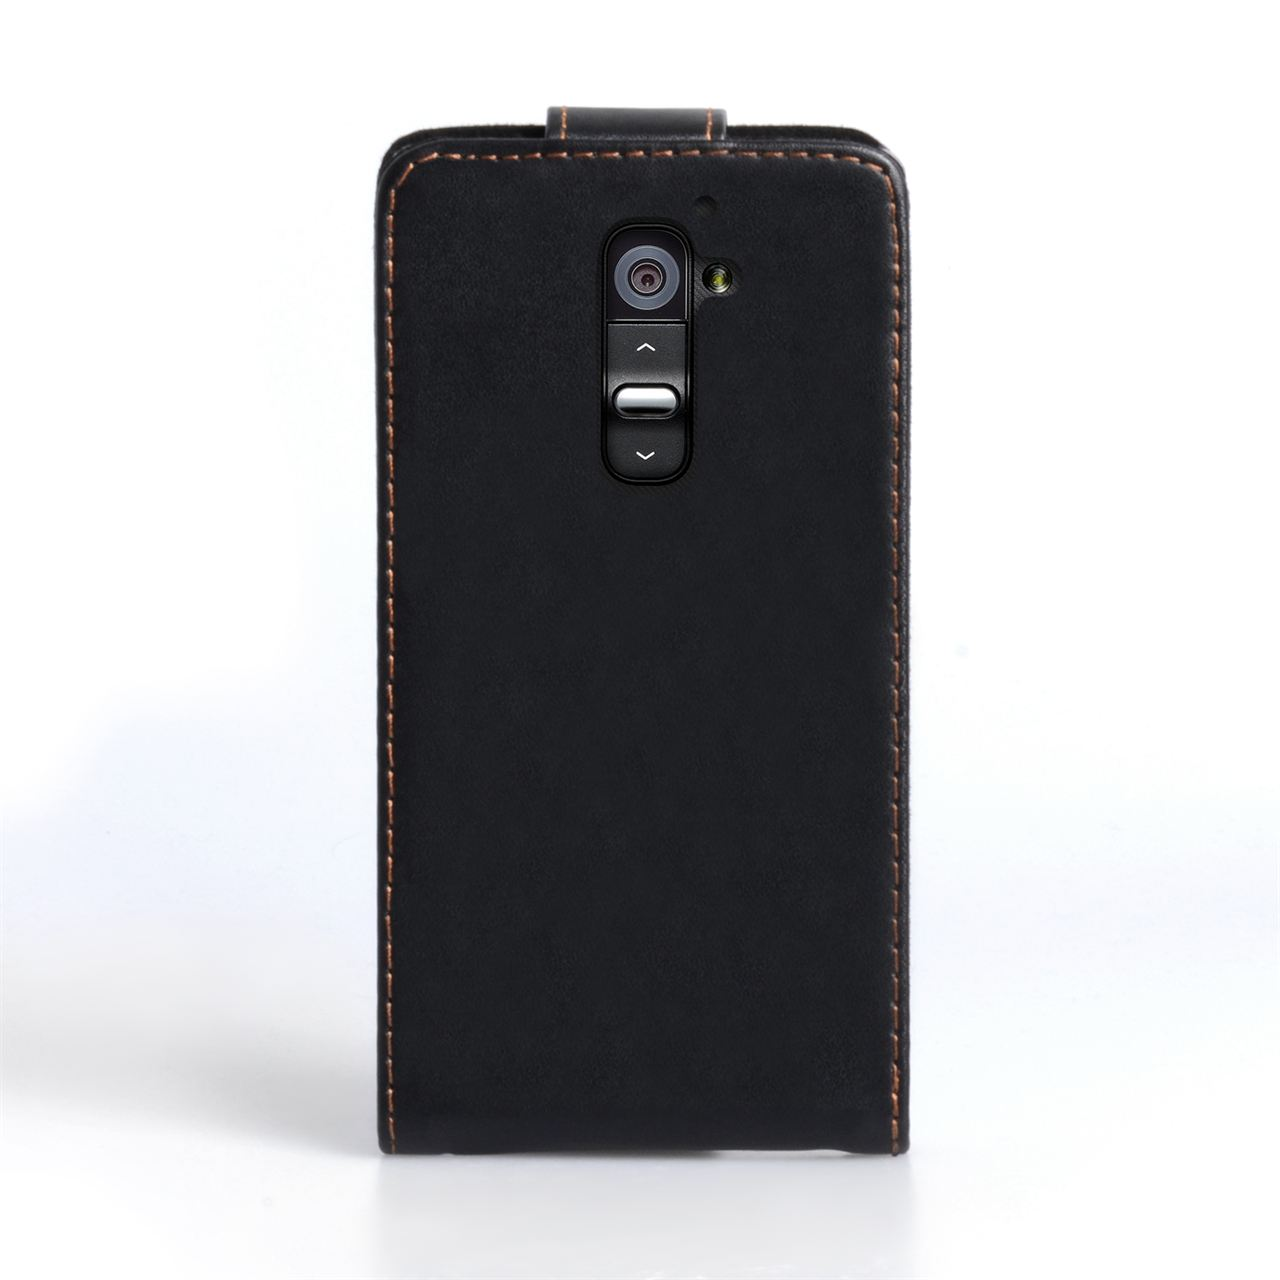 YouSave Accessories LG G2 Black Leather Effect Flip Case